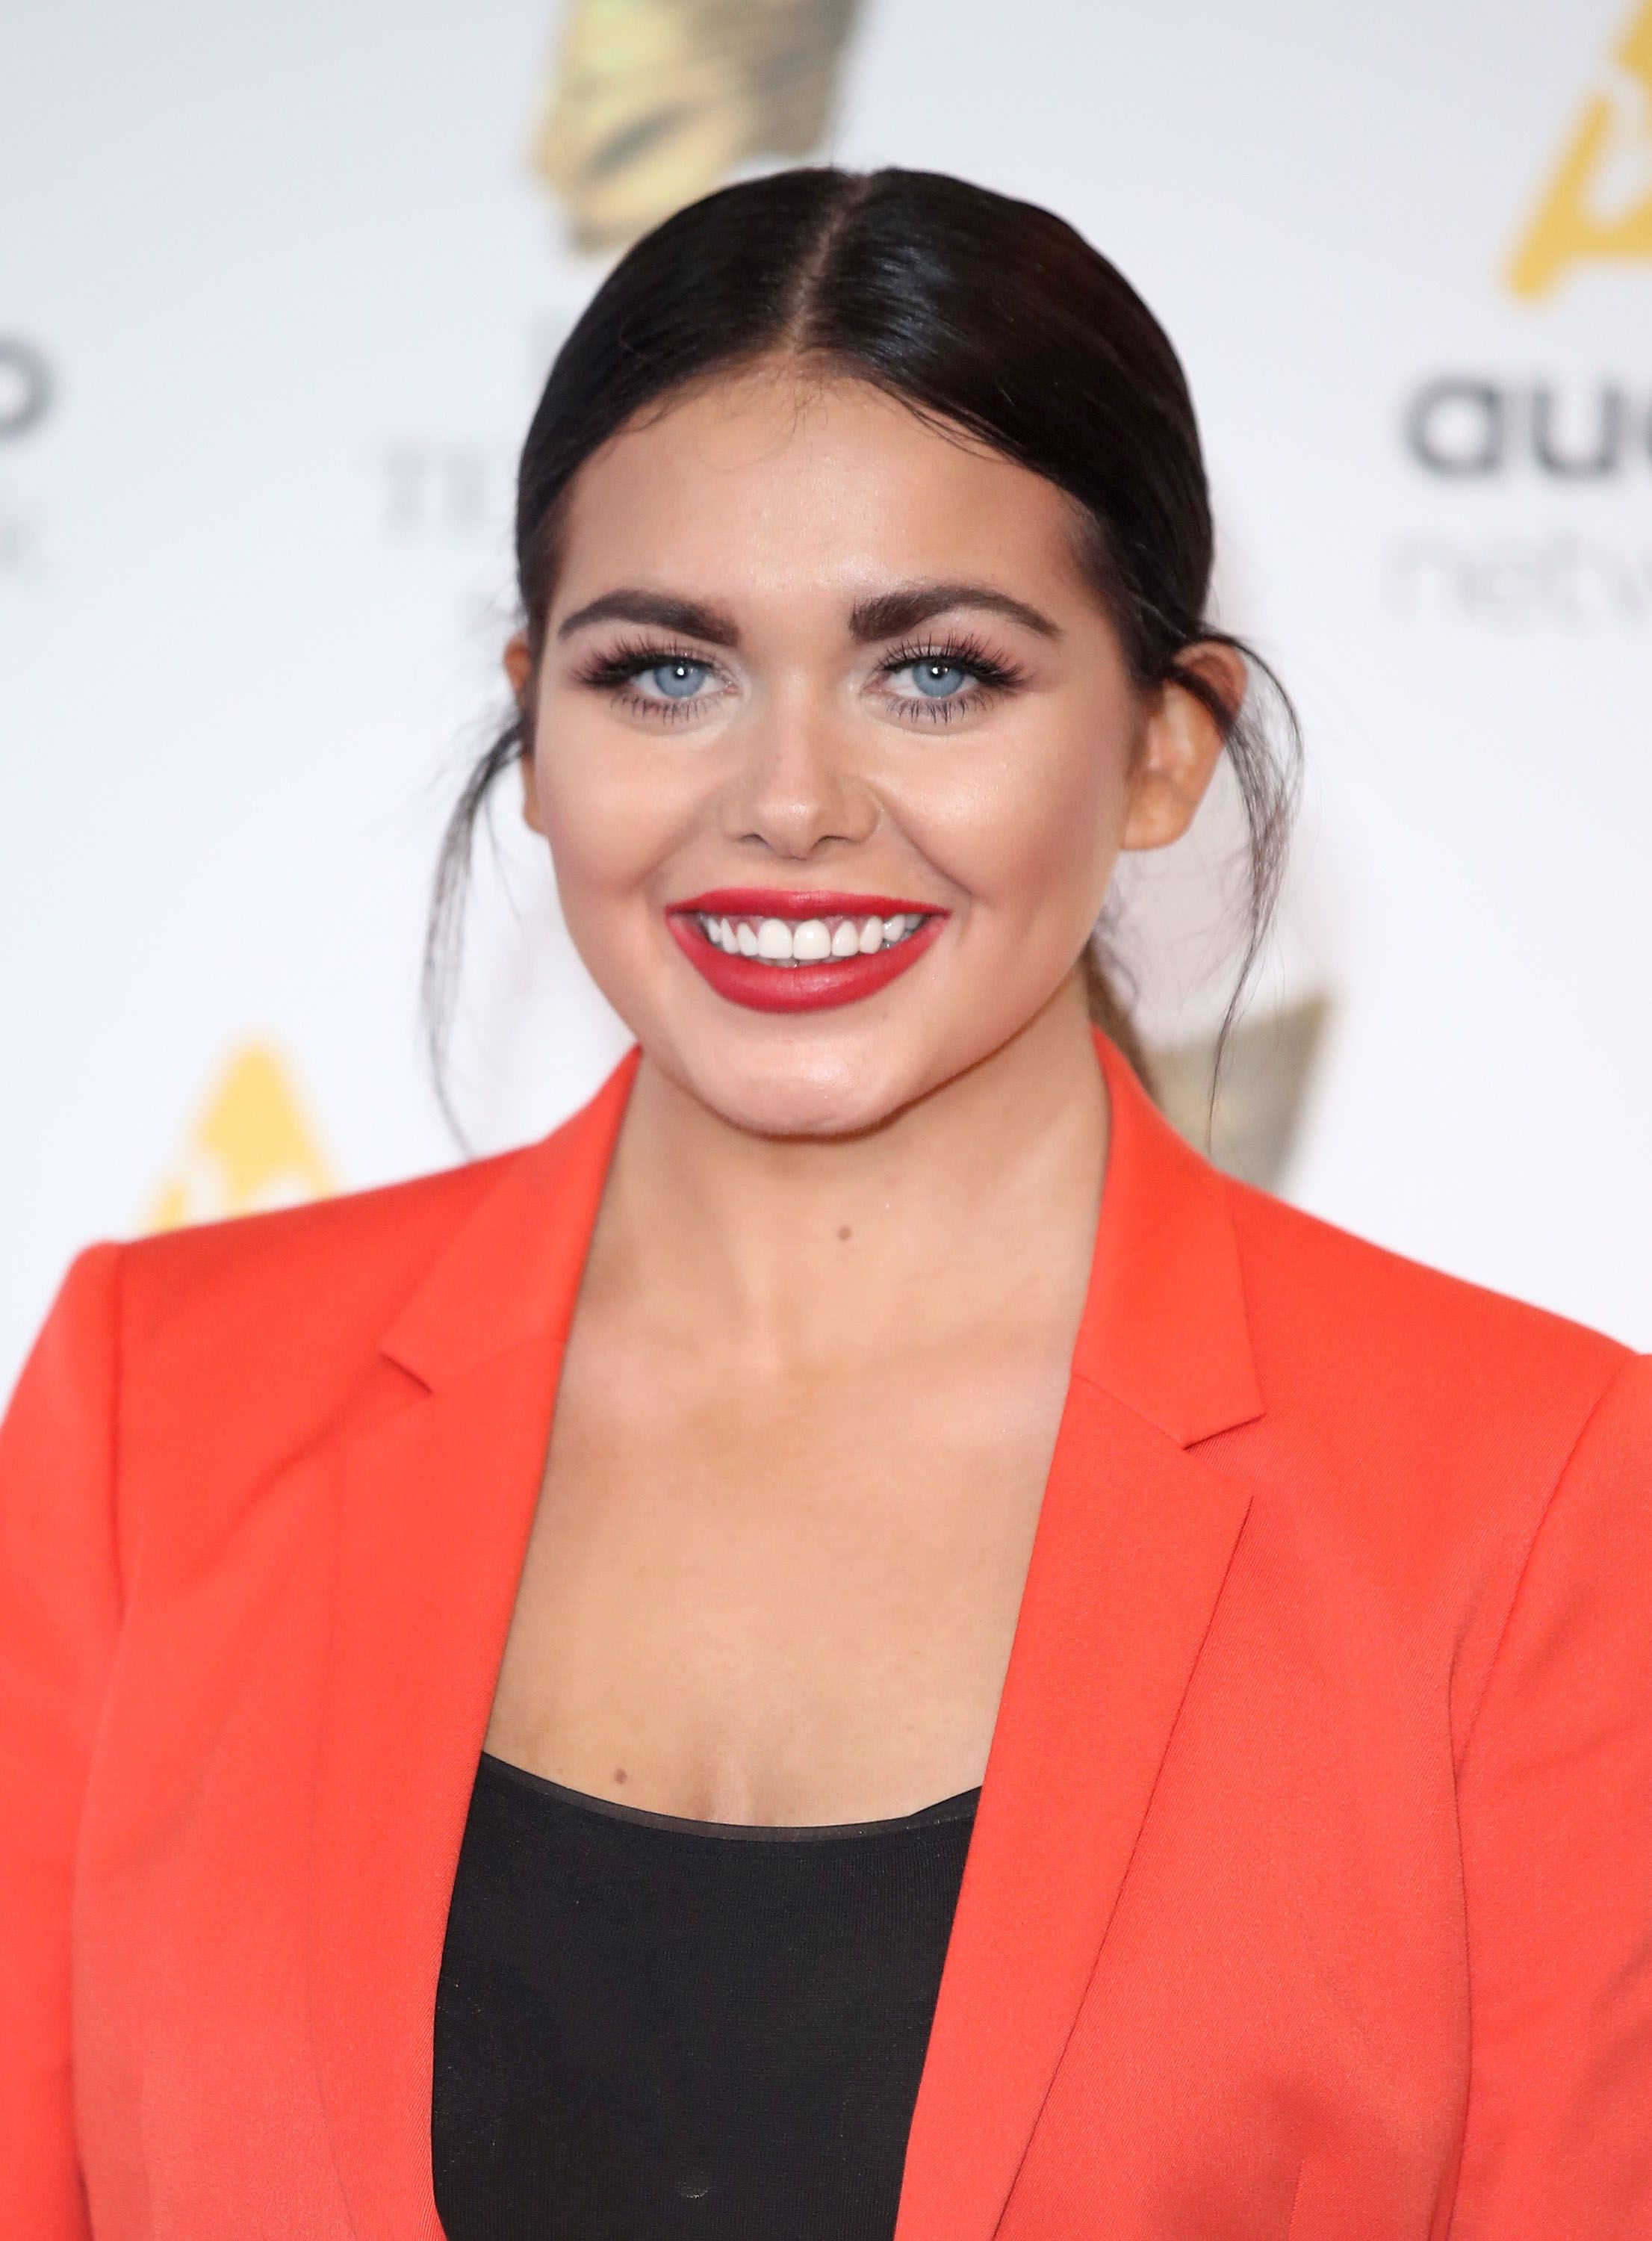 Scarlett Moffatt denies being sacked on CelebAbility after being replaced by Stacey Solomon